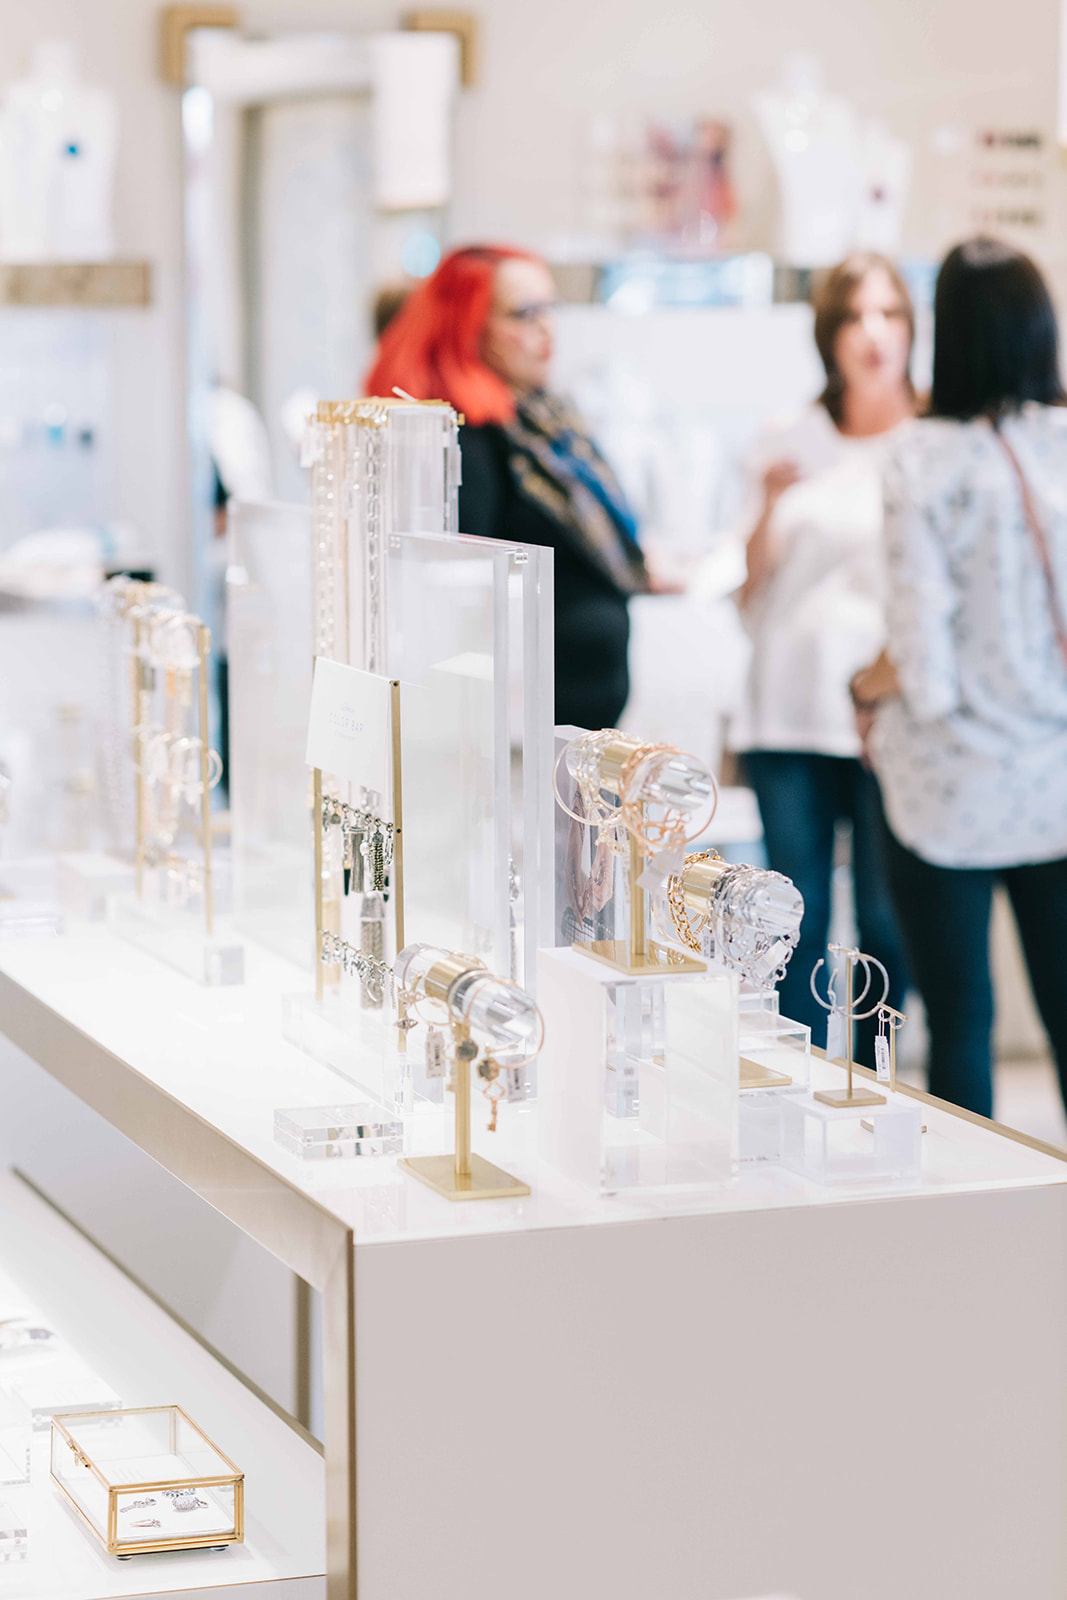 Jewelry that was available for purchase while members shopped and networked in the Kendra Scott store.  Photo by Anita Louise Photography